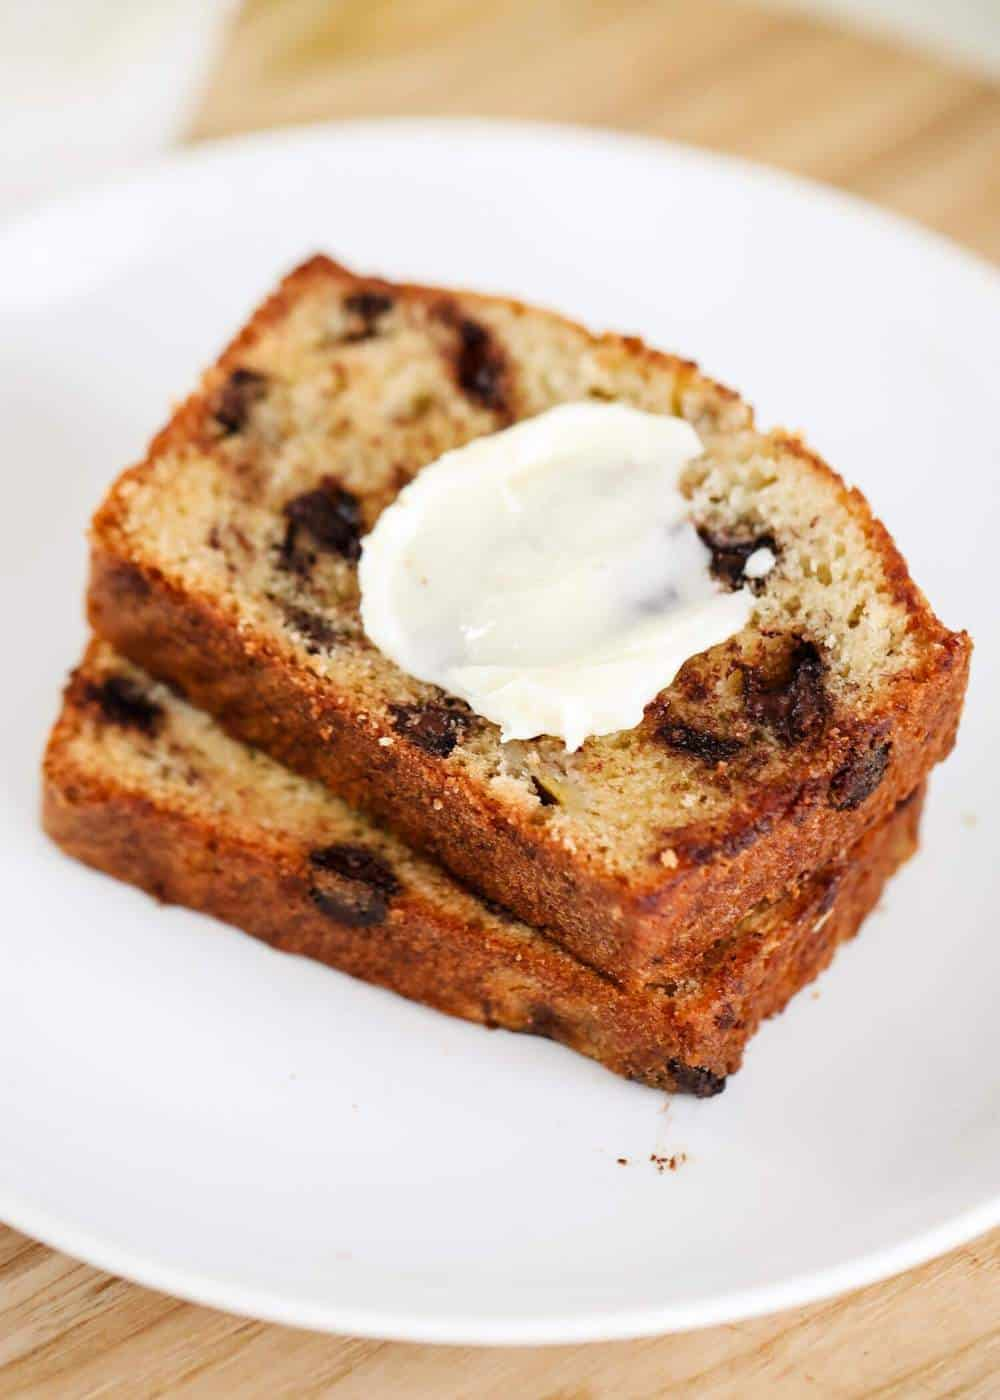 chocolate chip banana bread on a white plate with butter on top